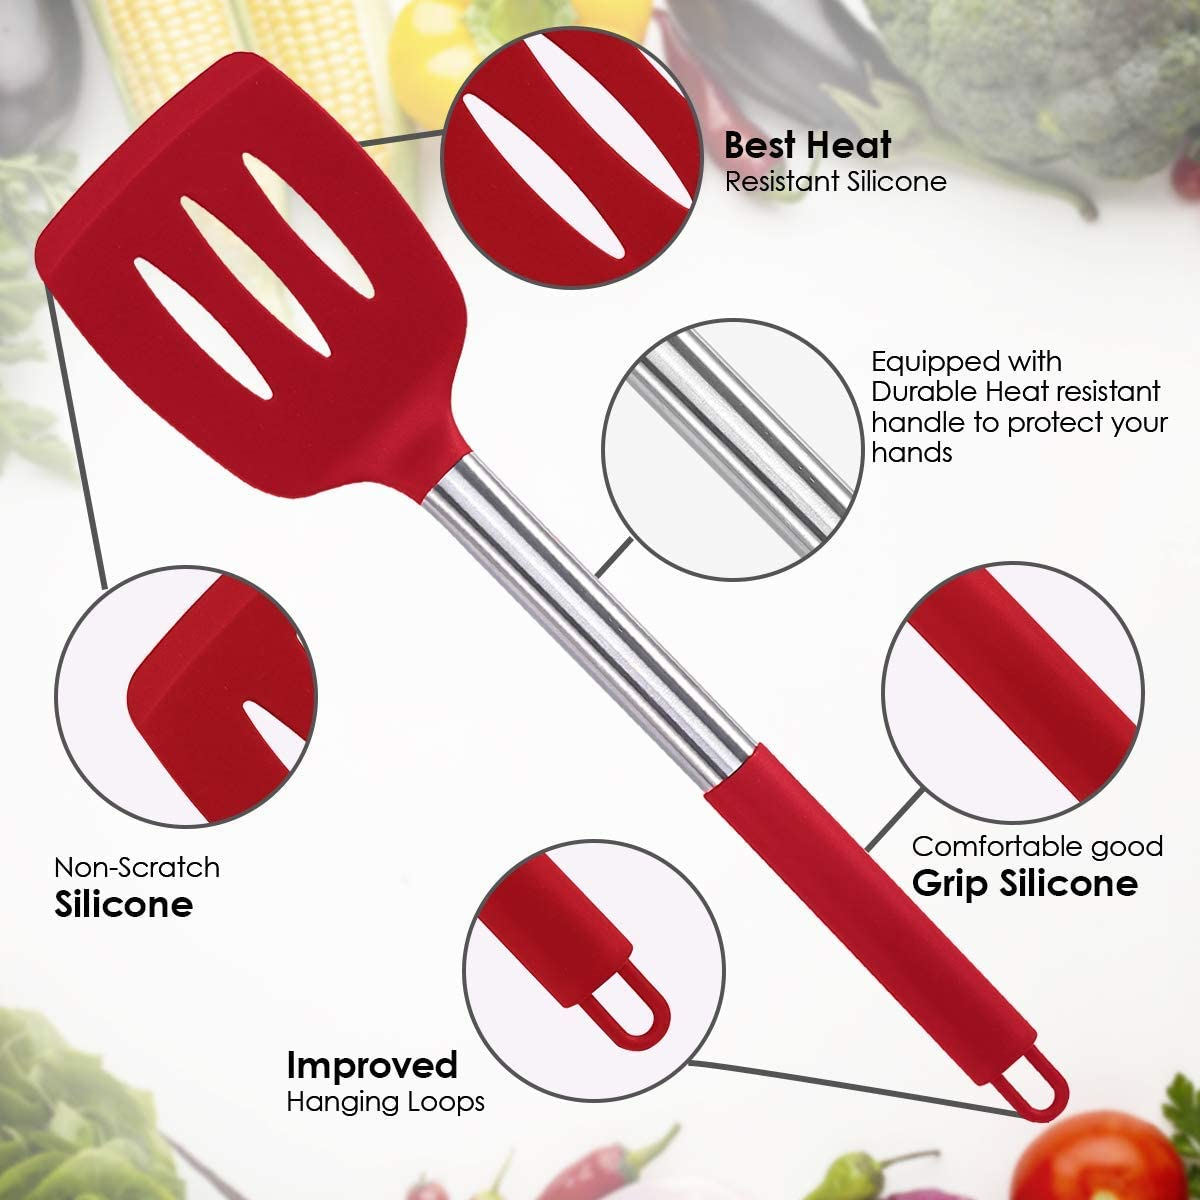 Silicone Cooking Utensil Sets Black 15 pcs Kitchen Utensils Set BPA-Free Cookware Kitchen Tools Set Non-Stick Heat Resistant Silicone Cookware with Stainless Steel Handle Red